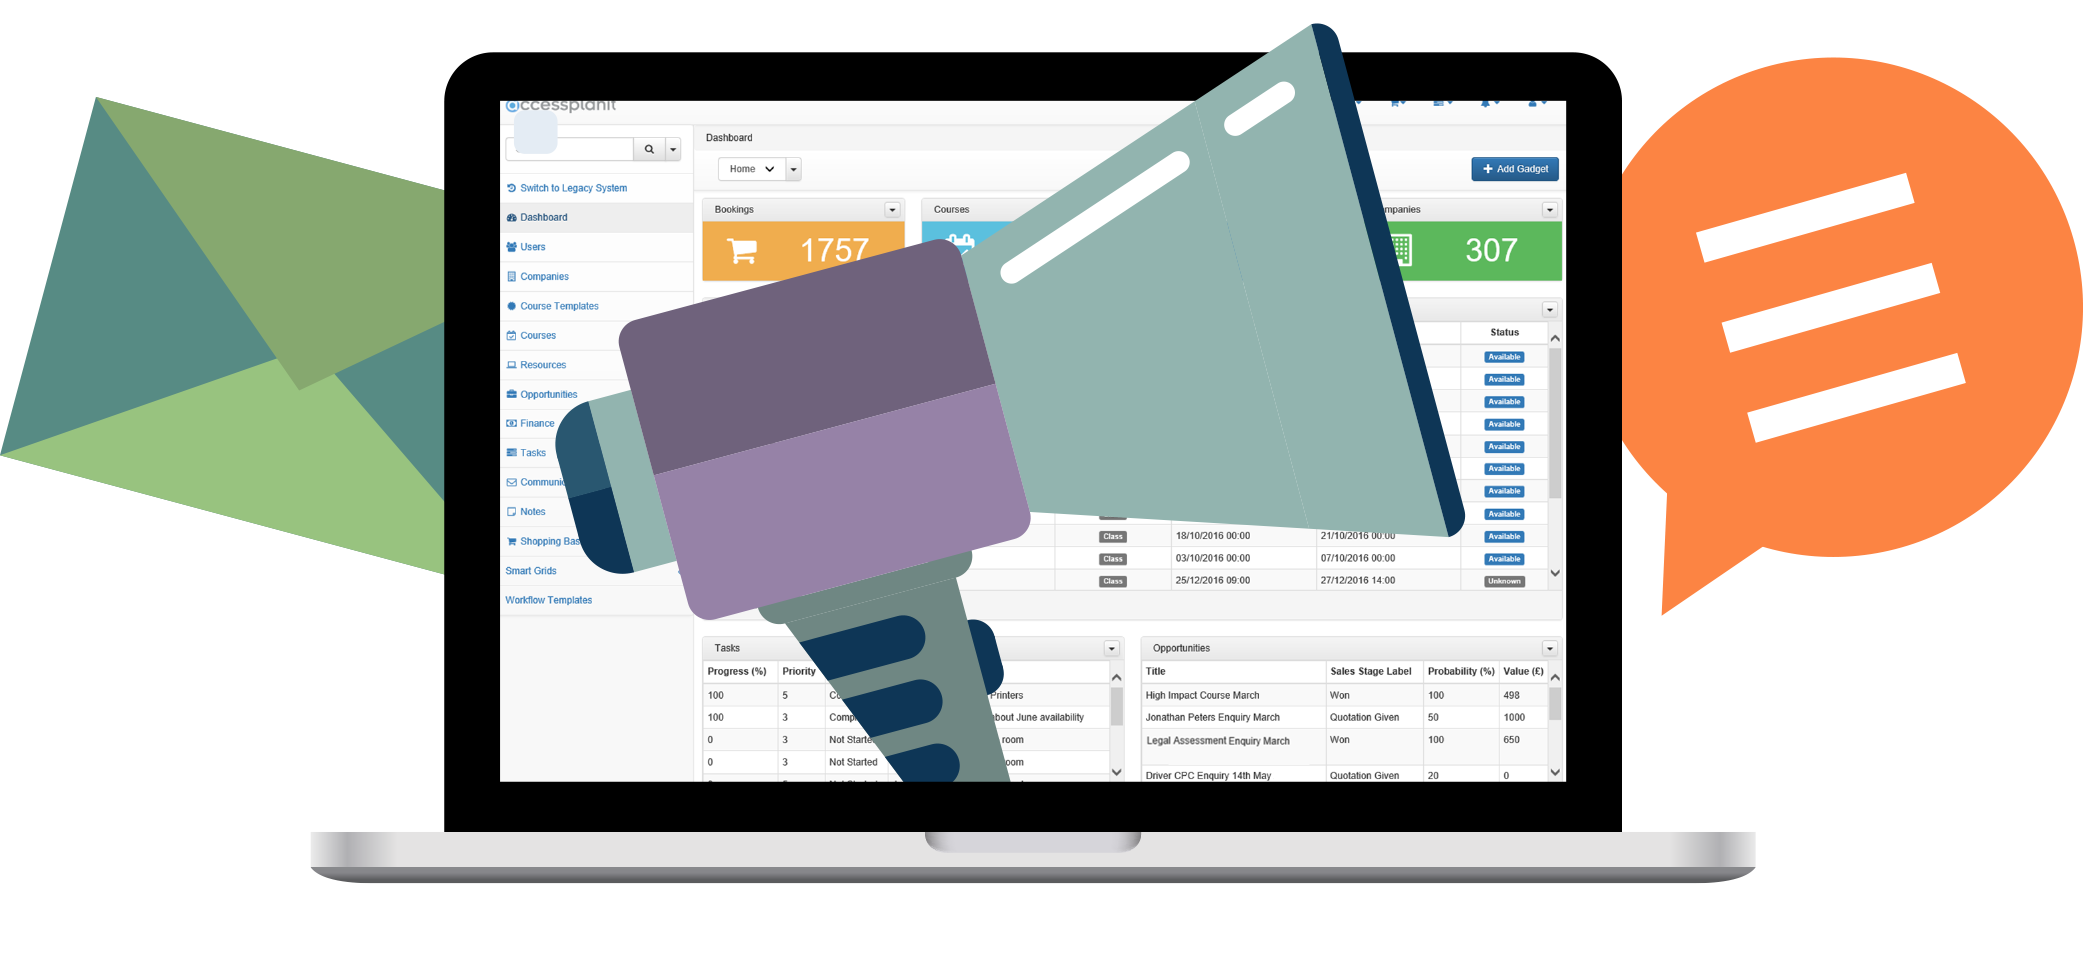 Automate communications with accessplanit training management system